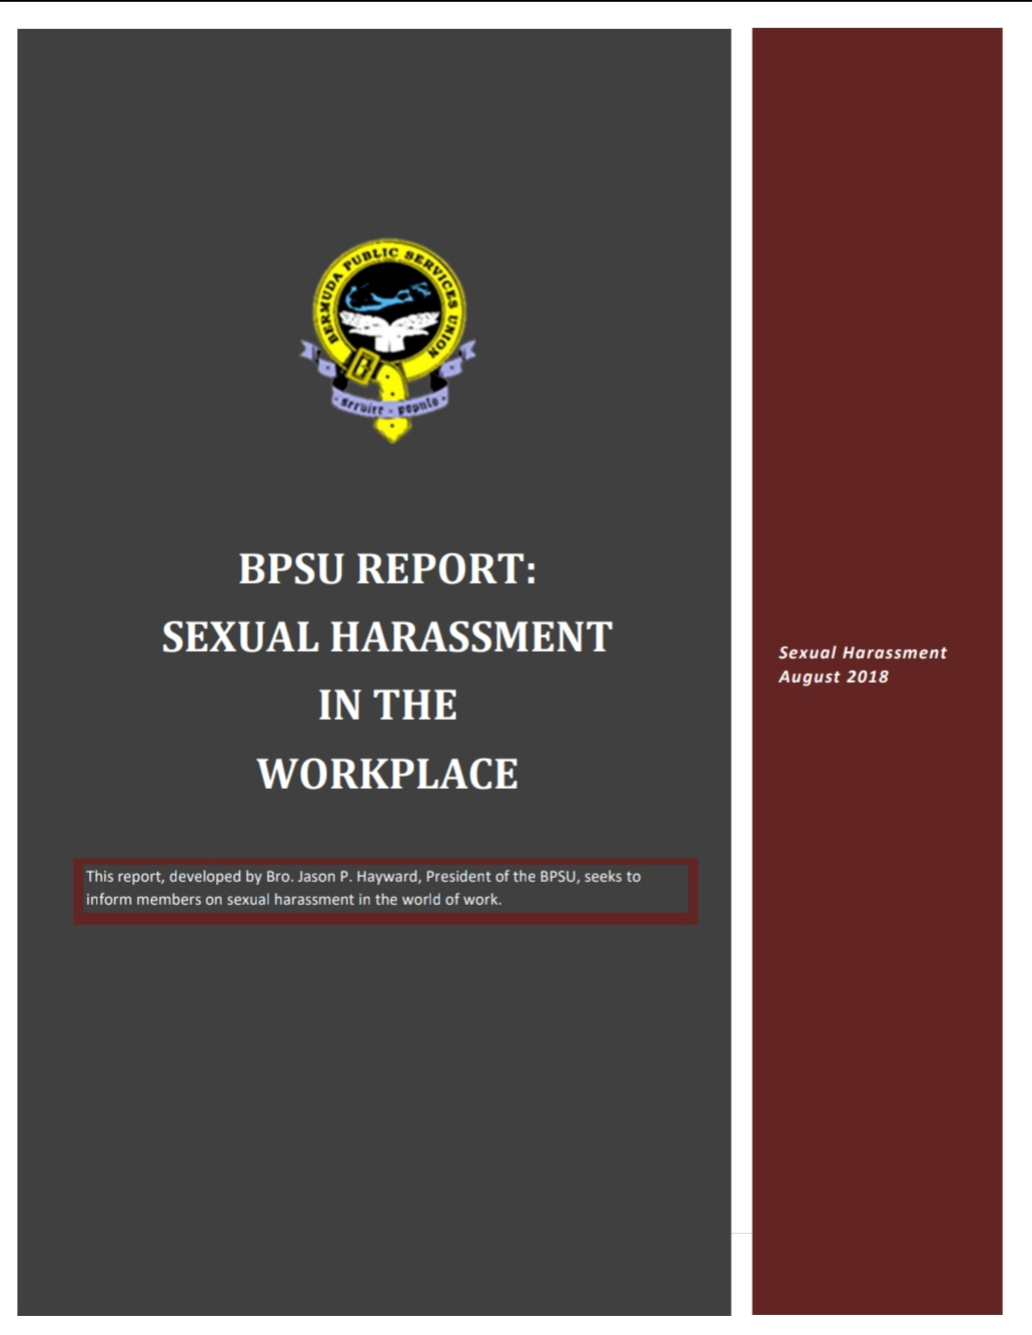 Sexual Harassment PP Cover